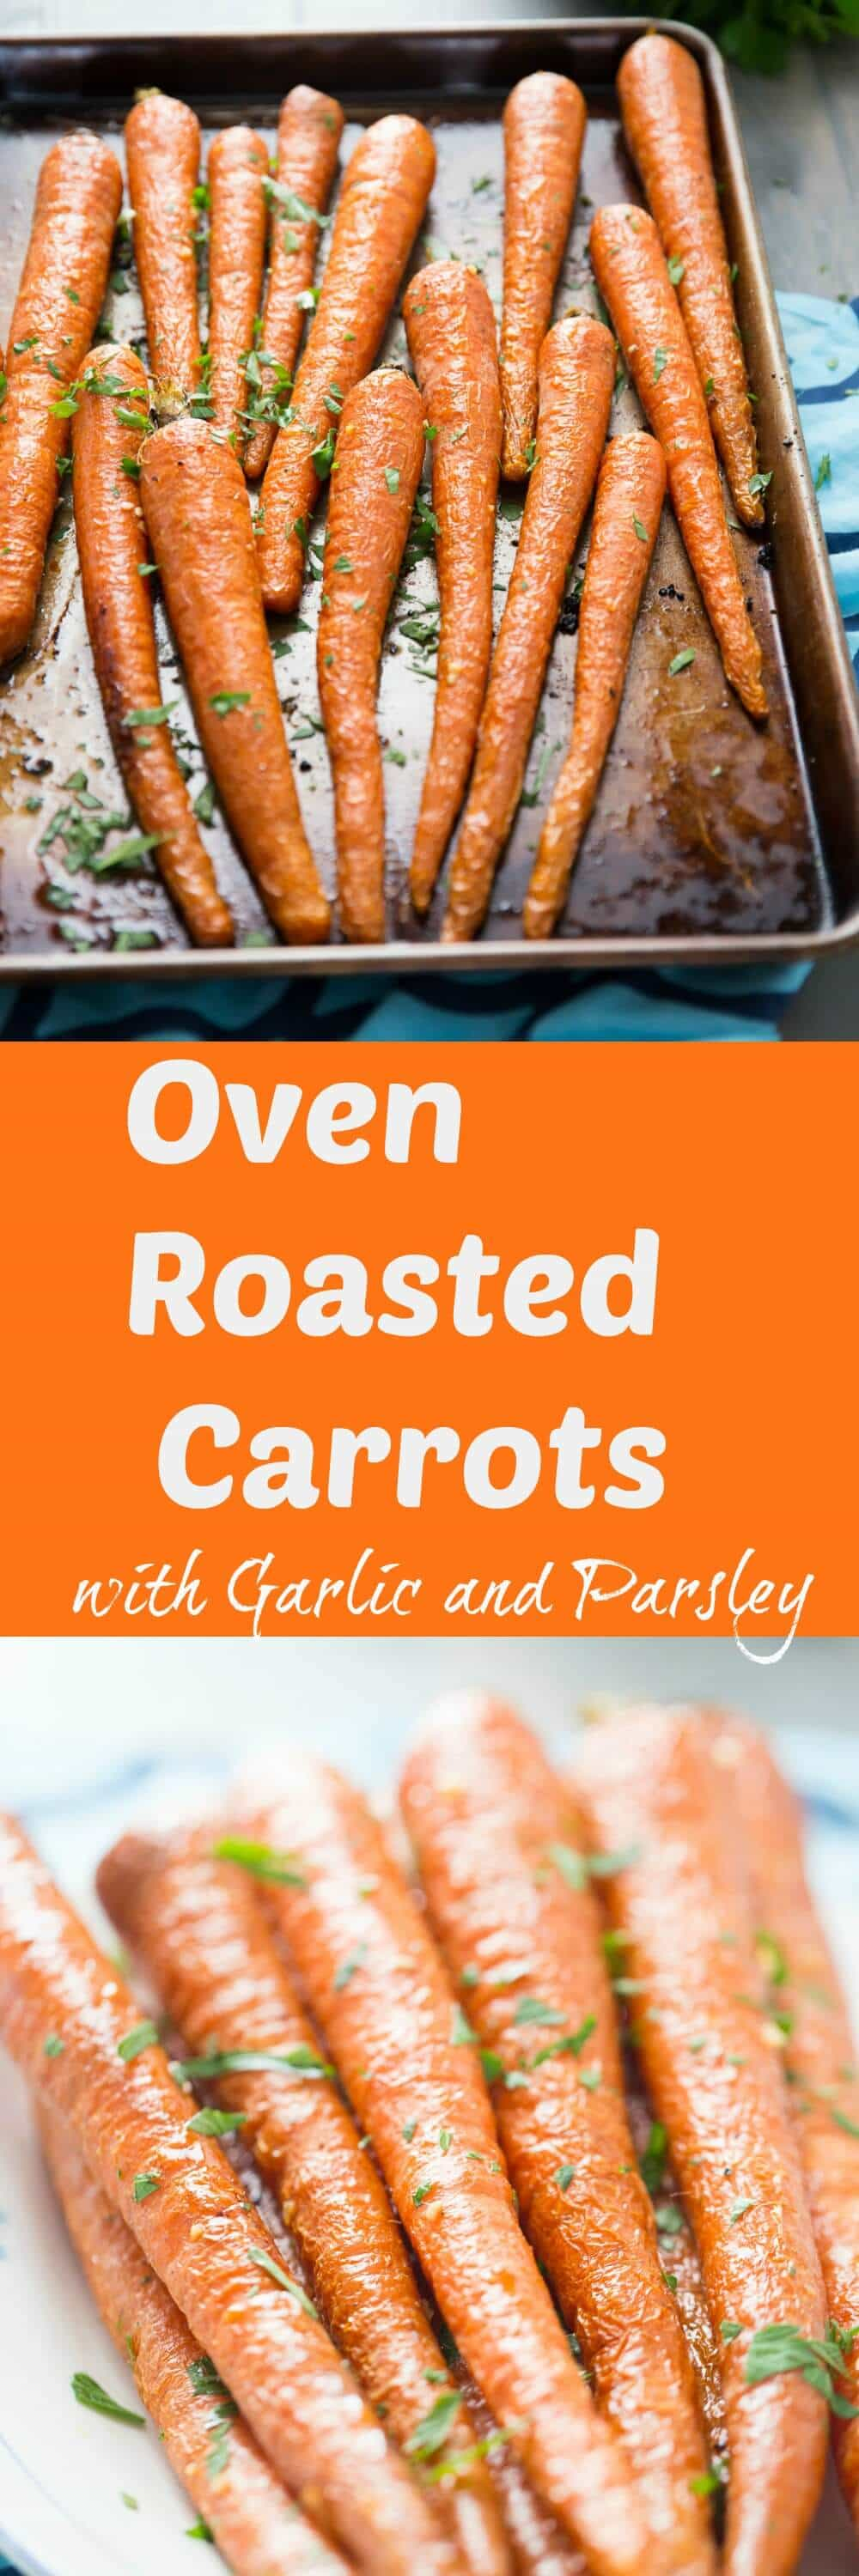 Garlic and parsley coated oven roasted carrots are such a great side dish for holiday or any day! They roast up soft, sweet and tender; you are going to love them!